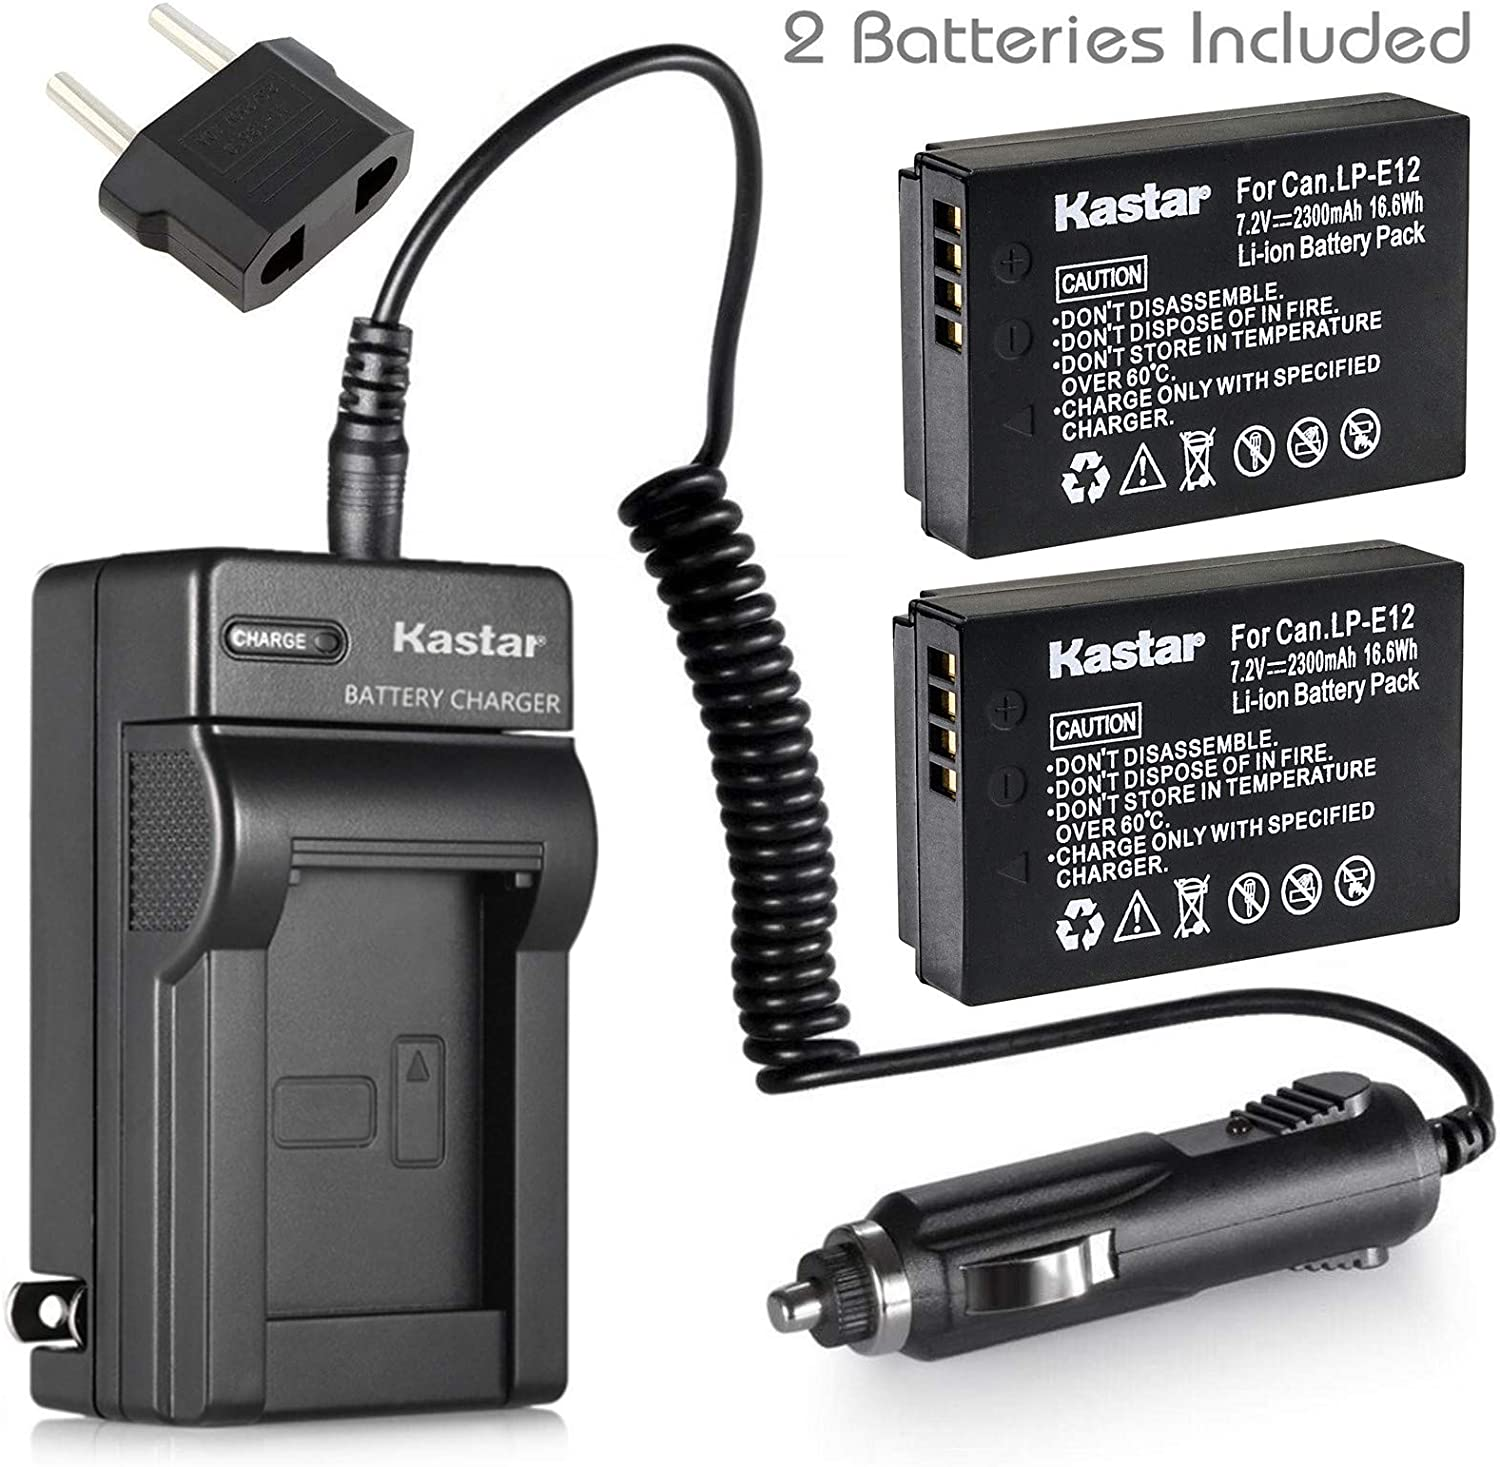 Kastar Battery (2-Pack) and Charger for Canon LP-E12 LPE12 Battery, LC-E12 LC-E12E Charger, Canon EOS 100D, EOS M, EOS M2, EOS M10, EOS M50, EOS M100, EOS M200, EOS Rebel SL1, PowerShot SX70 HS Camera